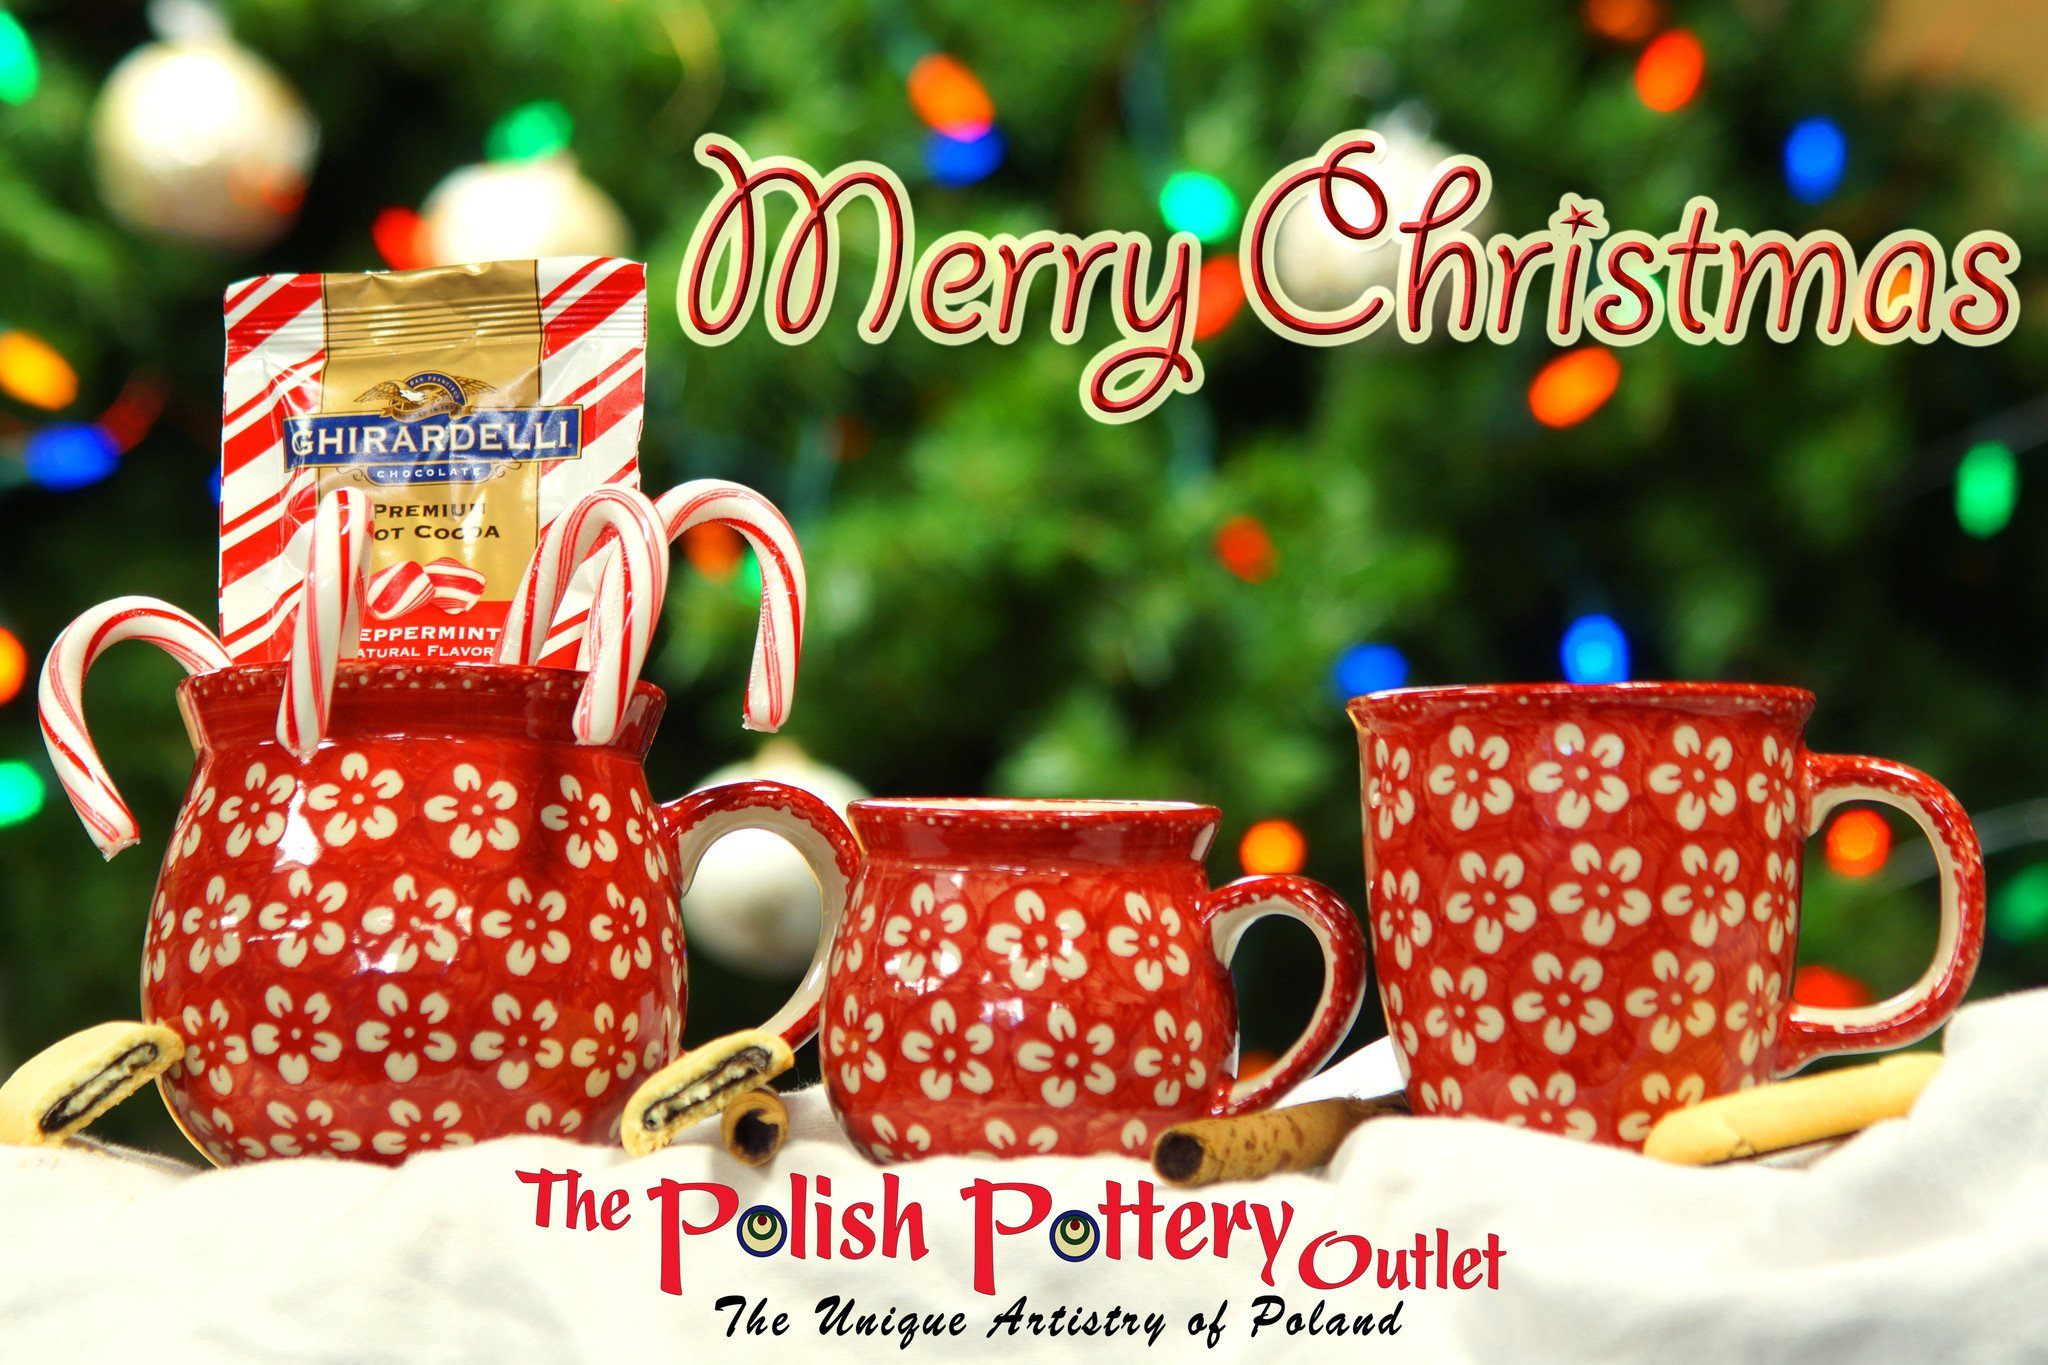 Christmas Gift Card The Polish Pottery Outlet